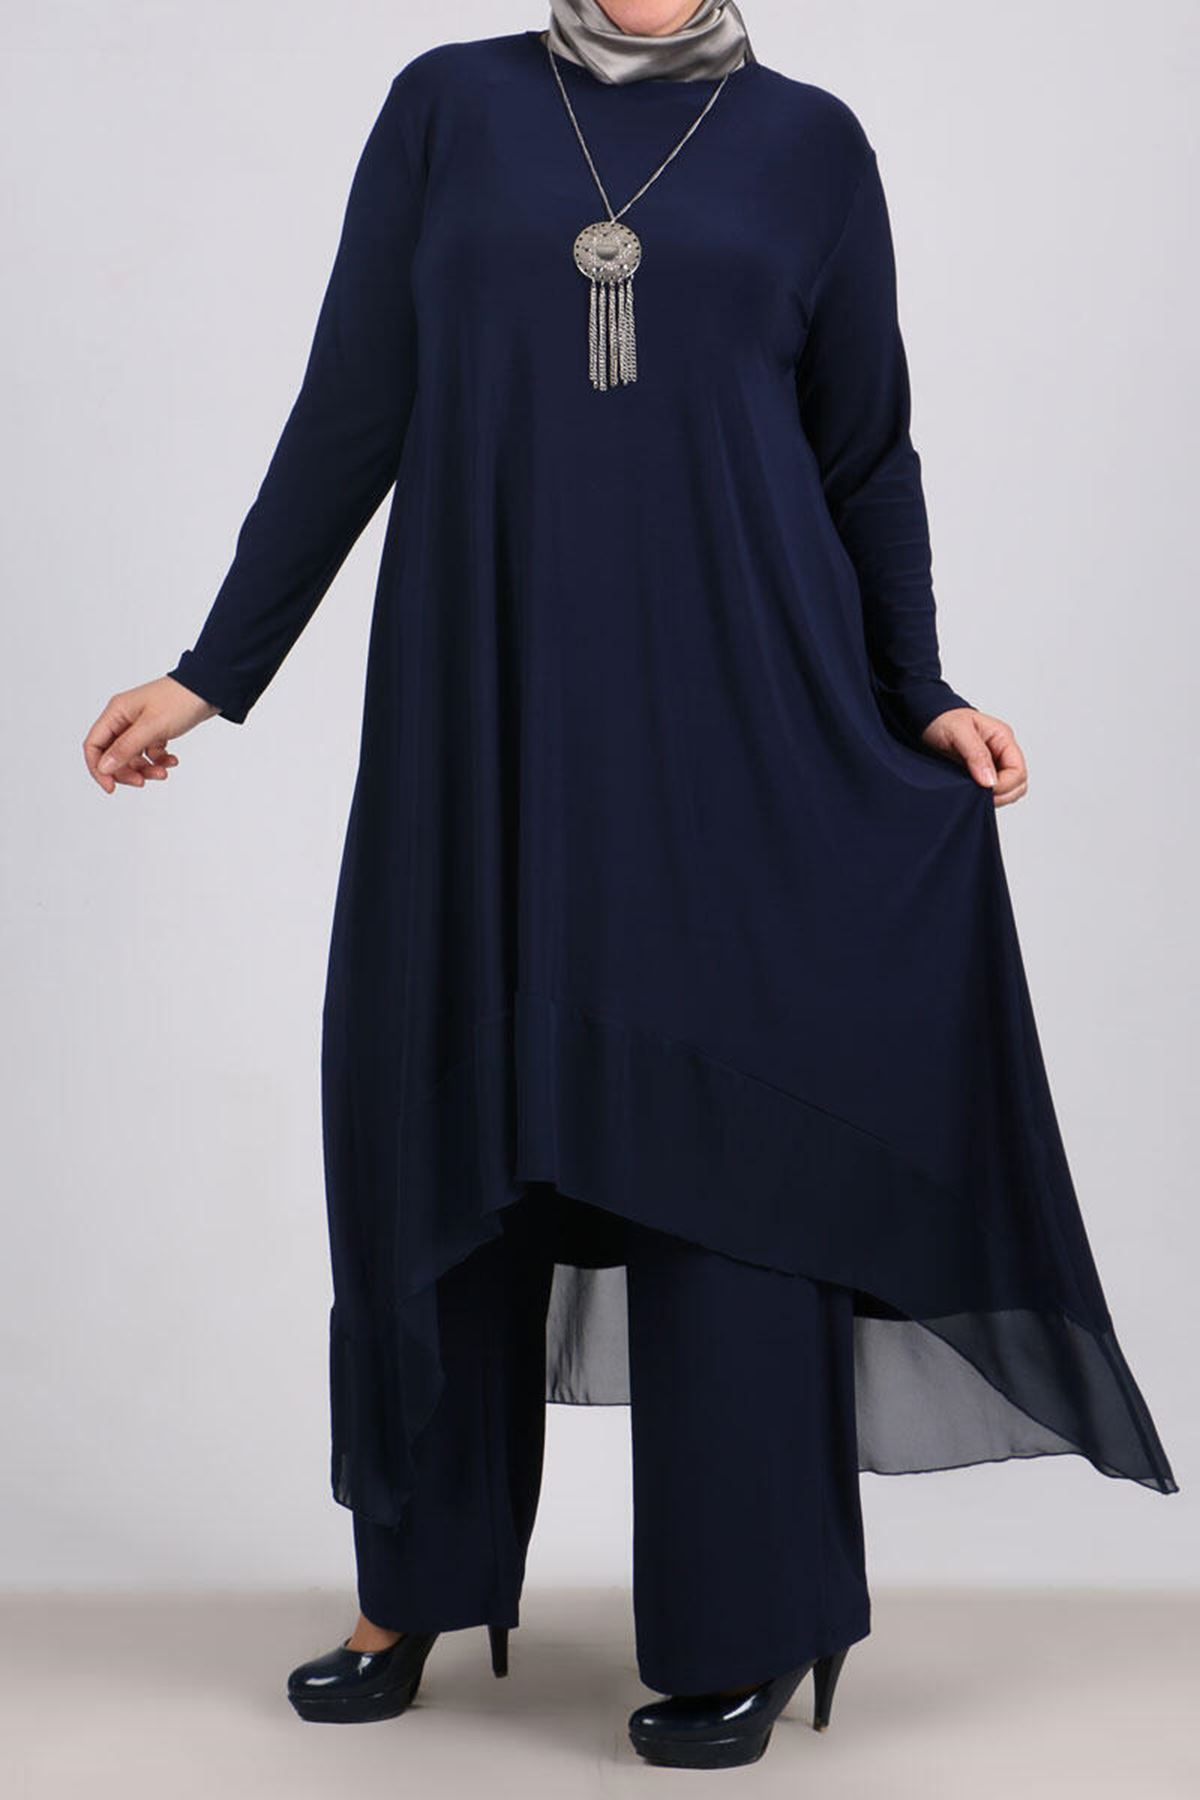 7602 Plus Size Two Piece Set with Tunic and Pants- Navy Blue